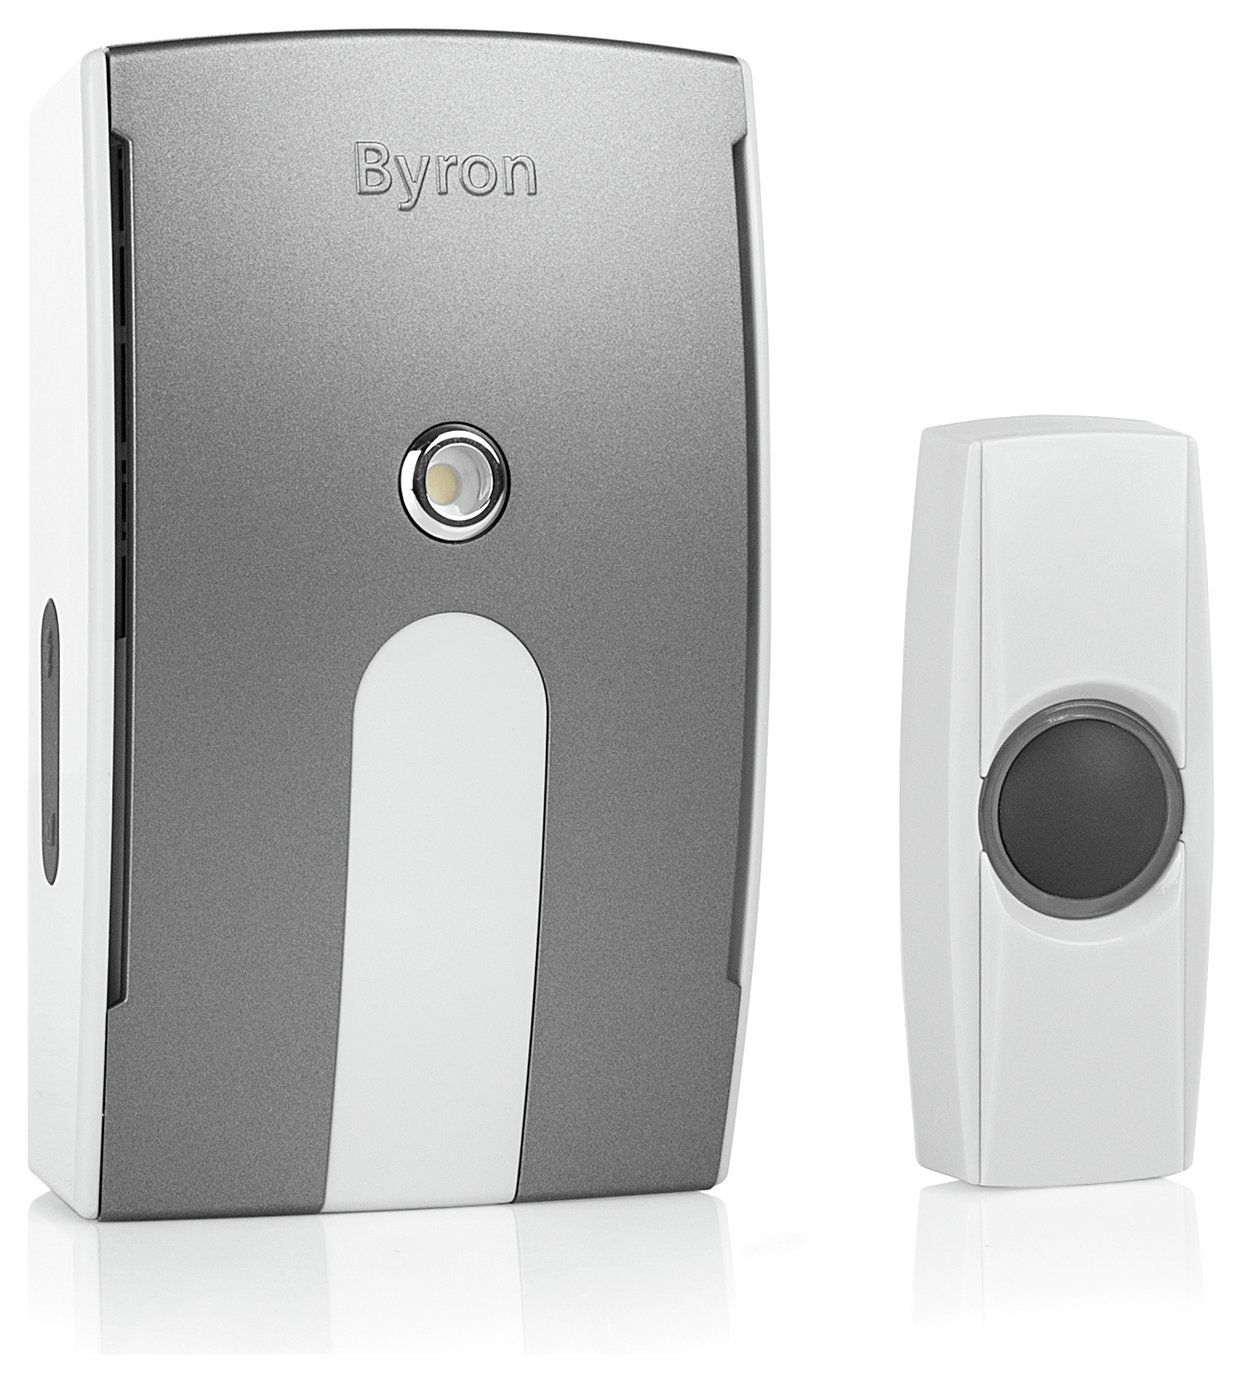 Byron BY514 125m Wireless Doorbell Plug In Flashing Chime